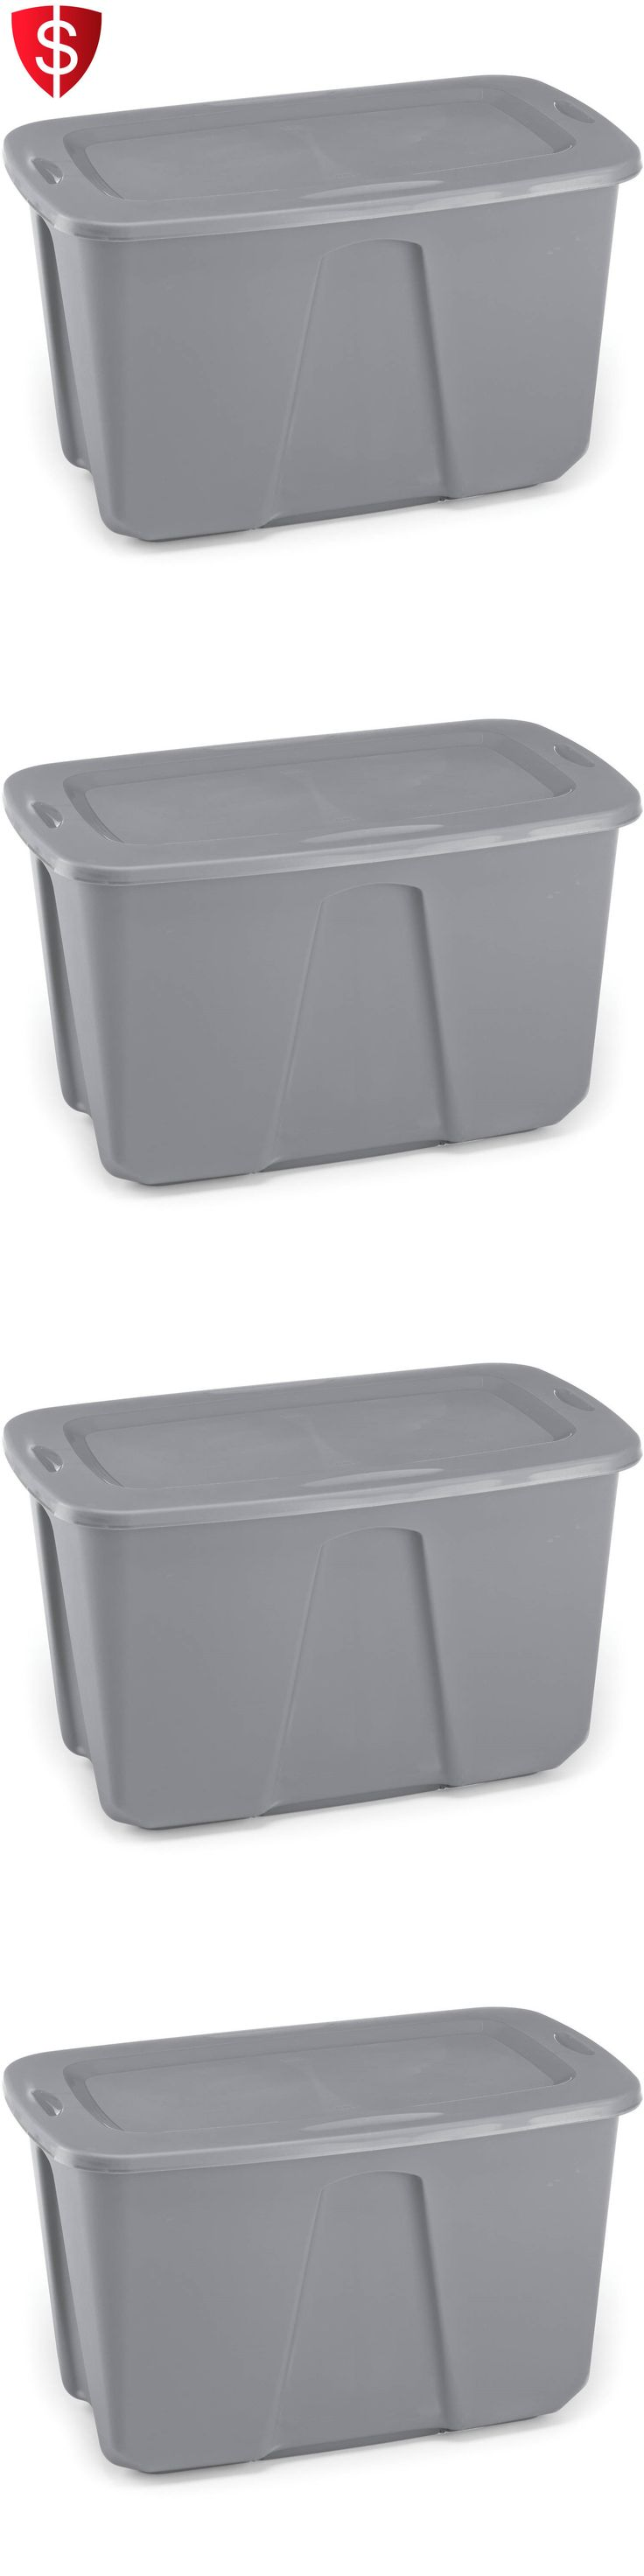 White tilt out clothes storage basket bin bathroom drawer ebay - Storage Boxes 159897 Set Of 6 32 Gallon Titanium Tote Large Storage Organizer Bin Silver